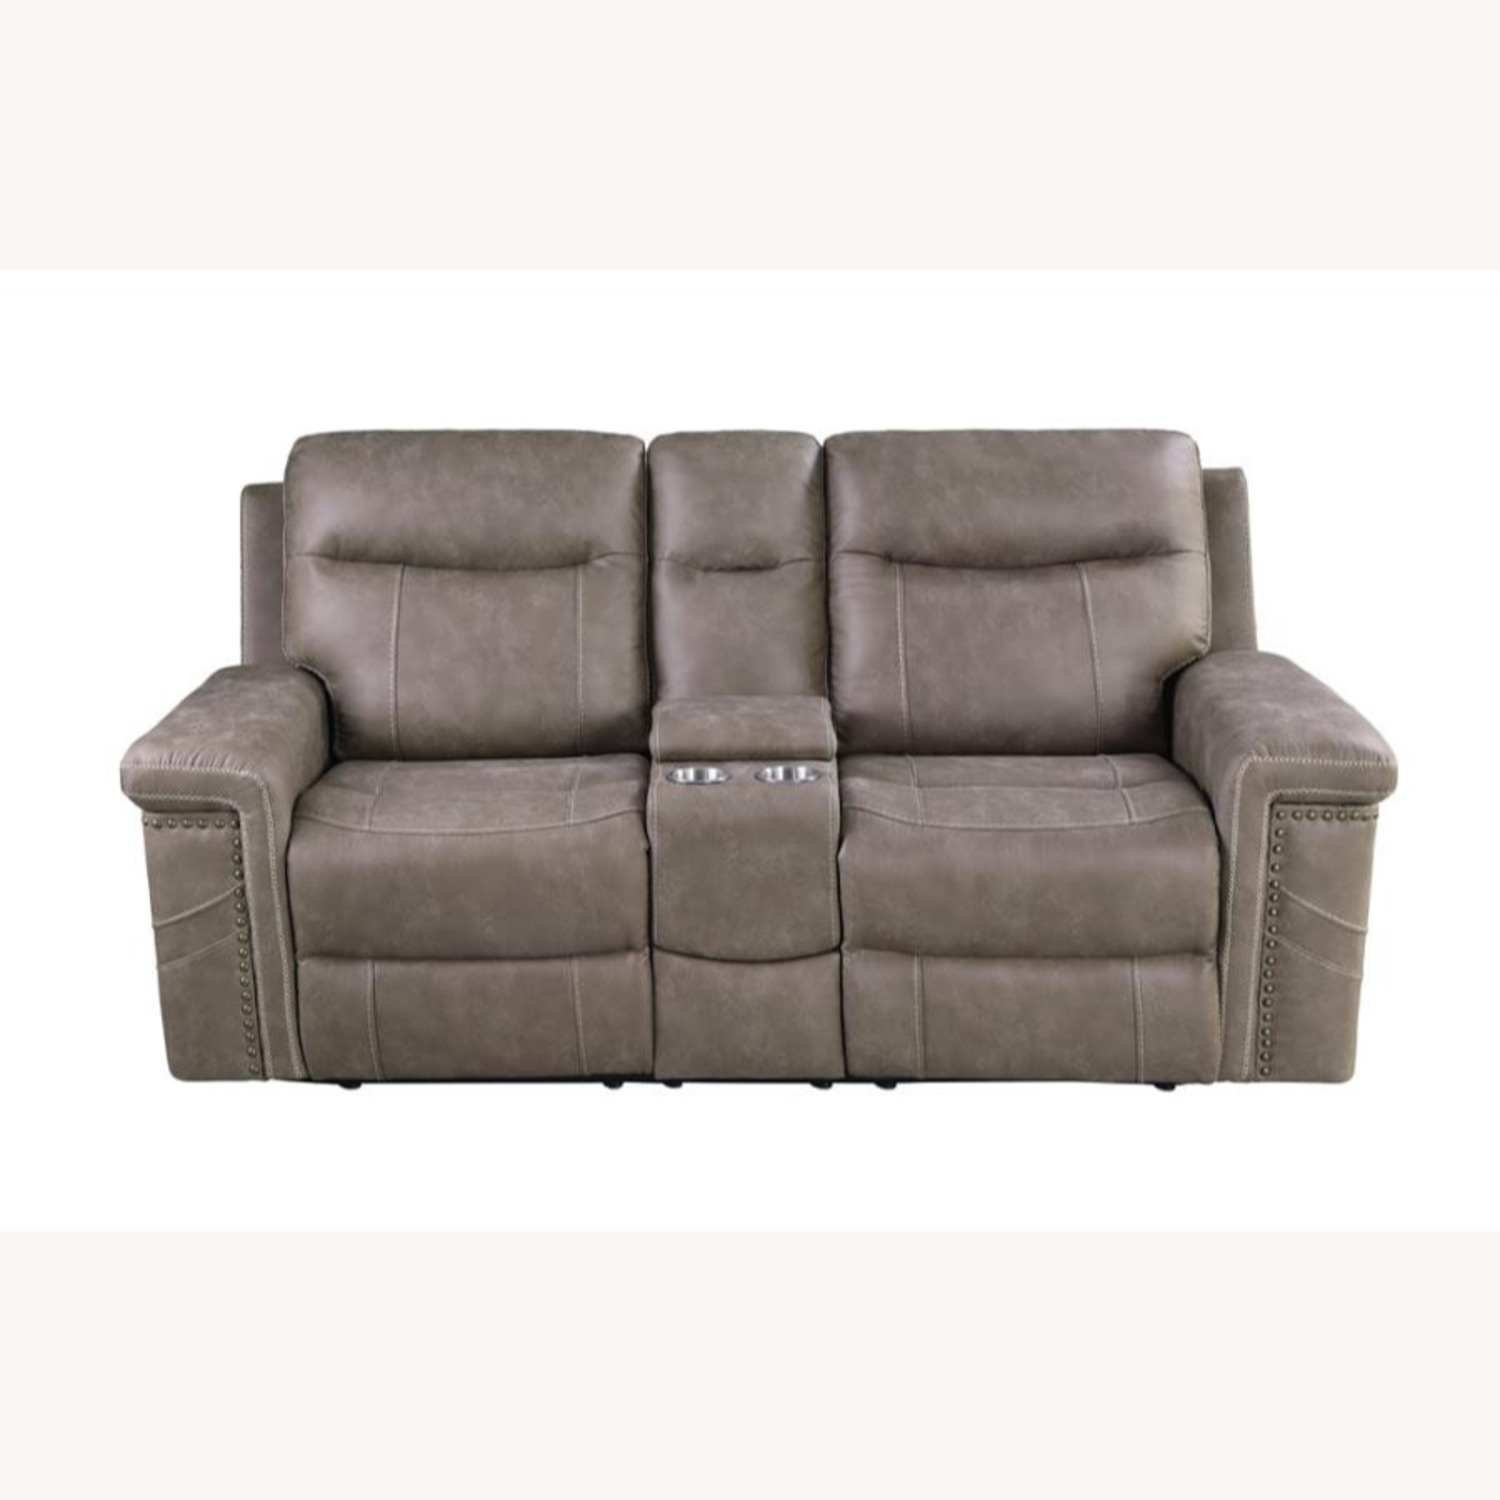 Power Loveseat Recliner In Taupe Upholstery - image-11